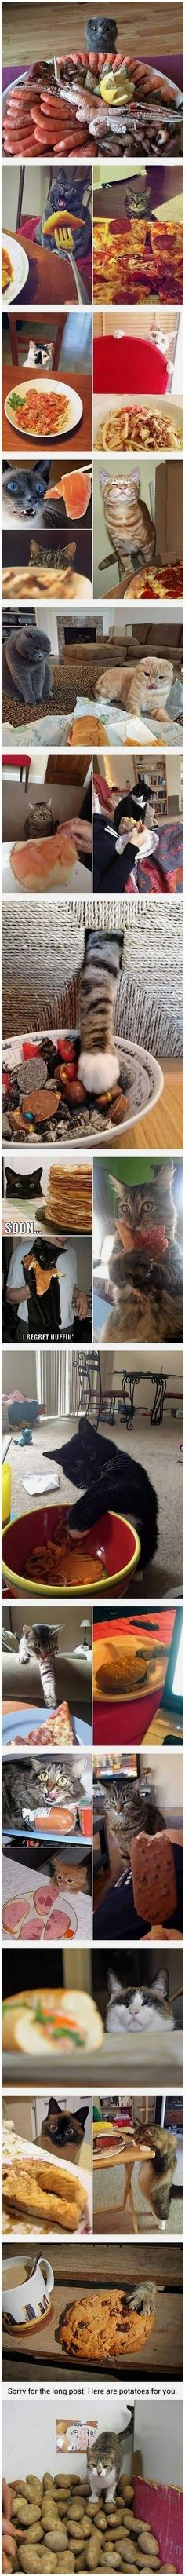 Cats hunting your dinner Cat owners will understand 9GAG Funny Pet Memes